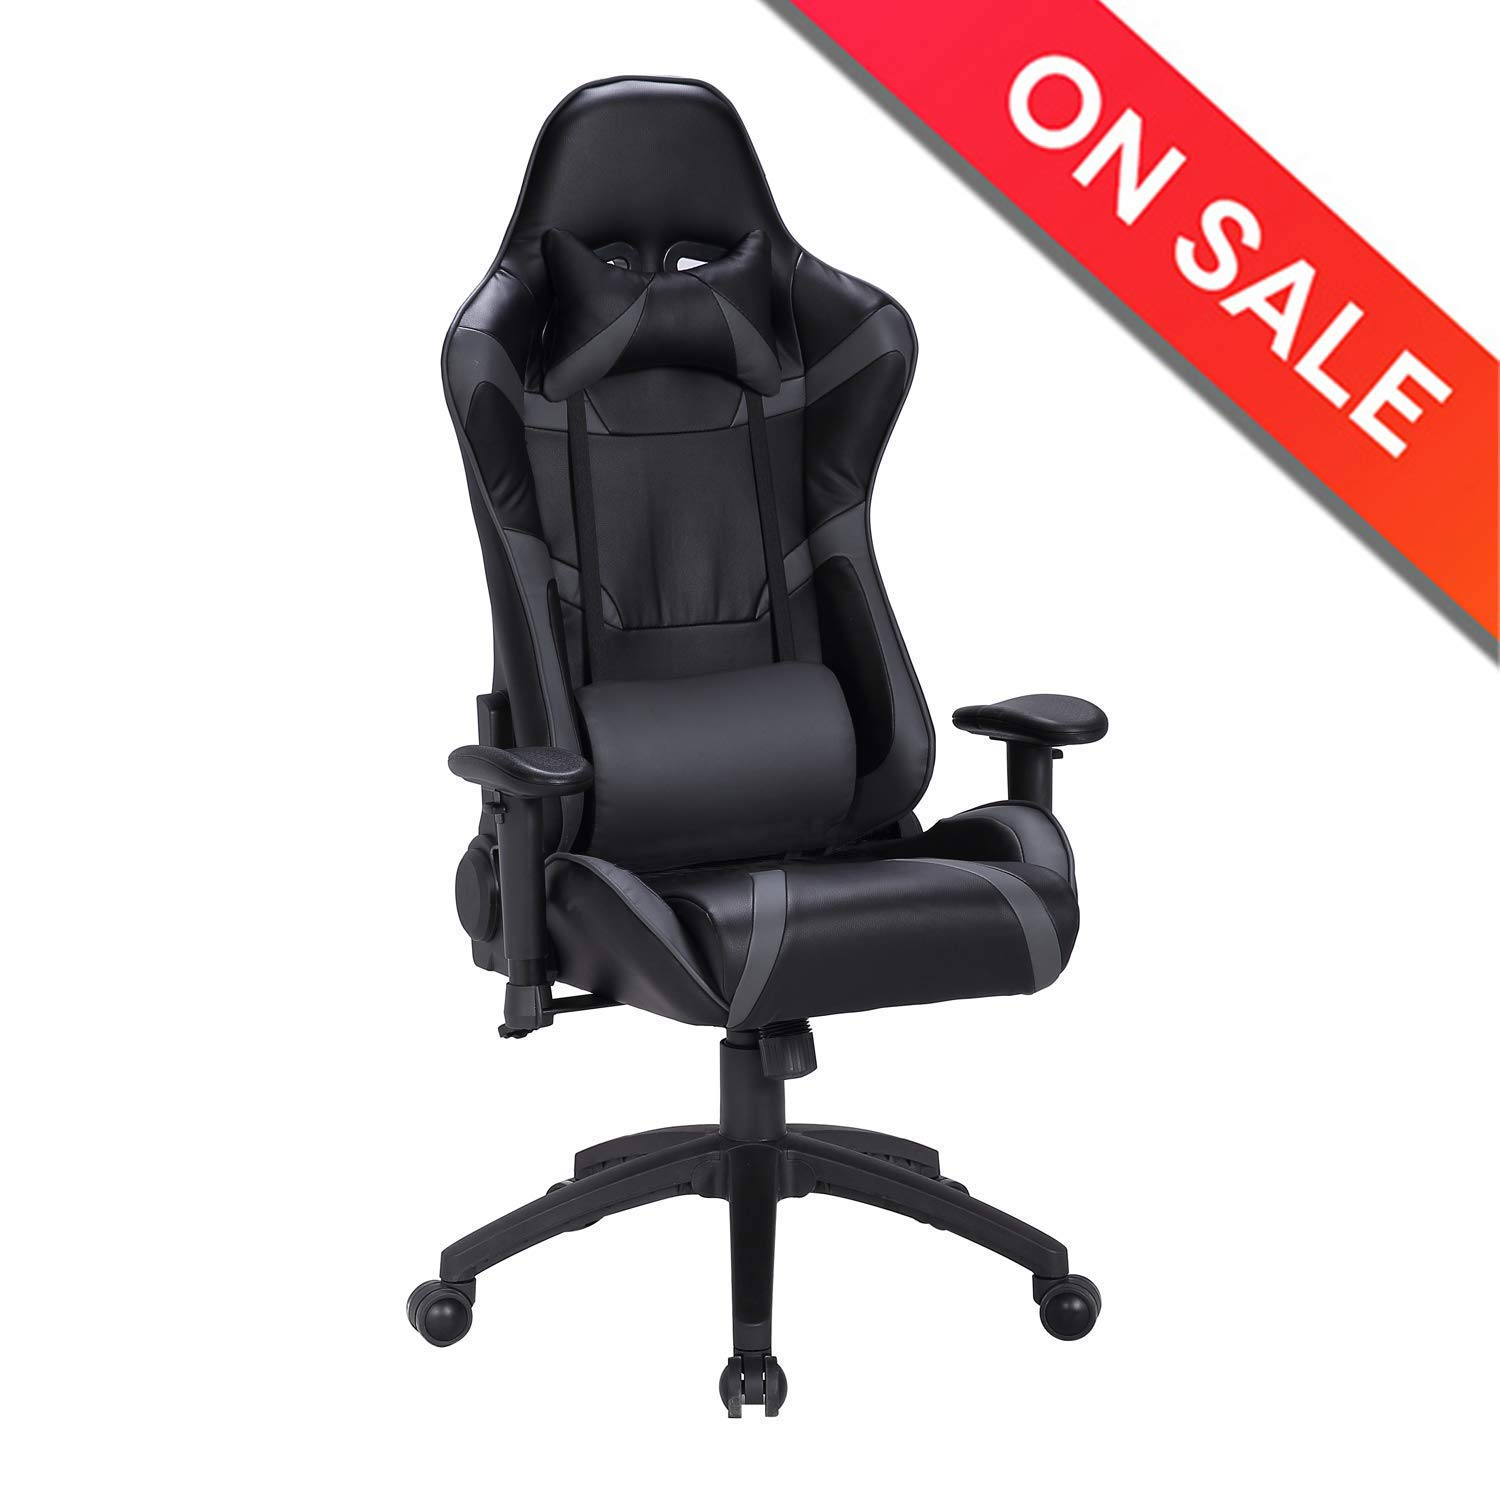 LCH Gaming Chair Ergonomic High Back Racing Chair Pu Leather Bucket Seat, Office Executive Chair Computer Desk Swivel Chair with Headrest Lumbar ...